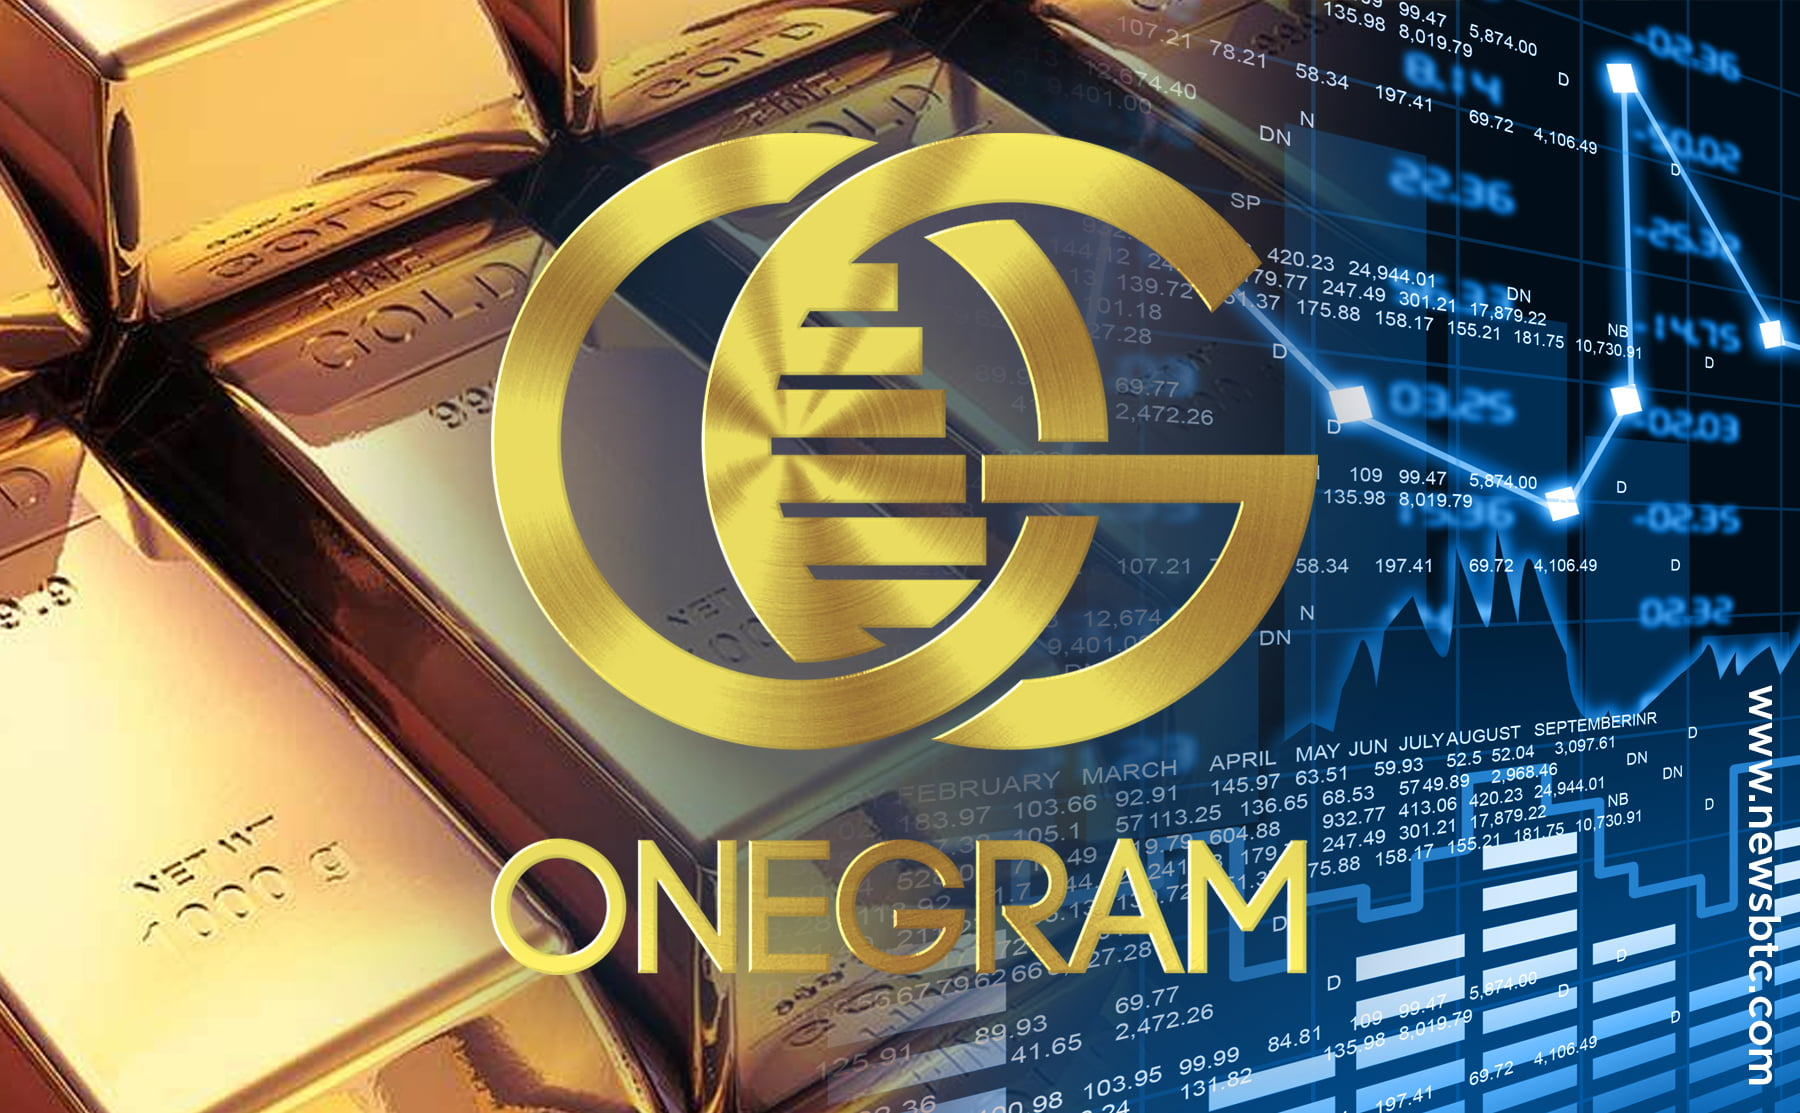 how to buy one gram cryptocurrency